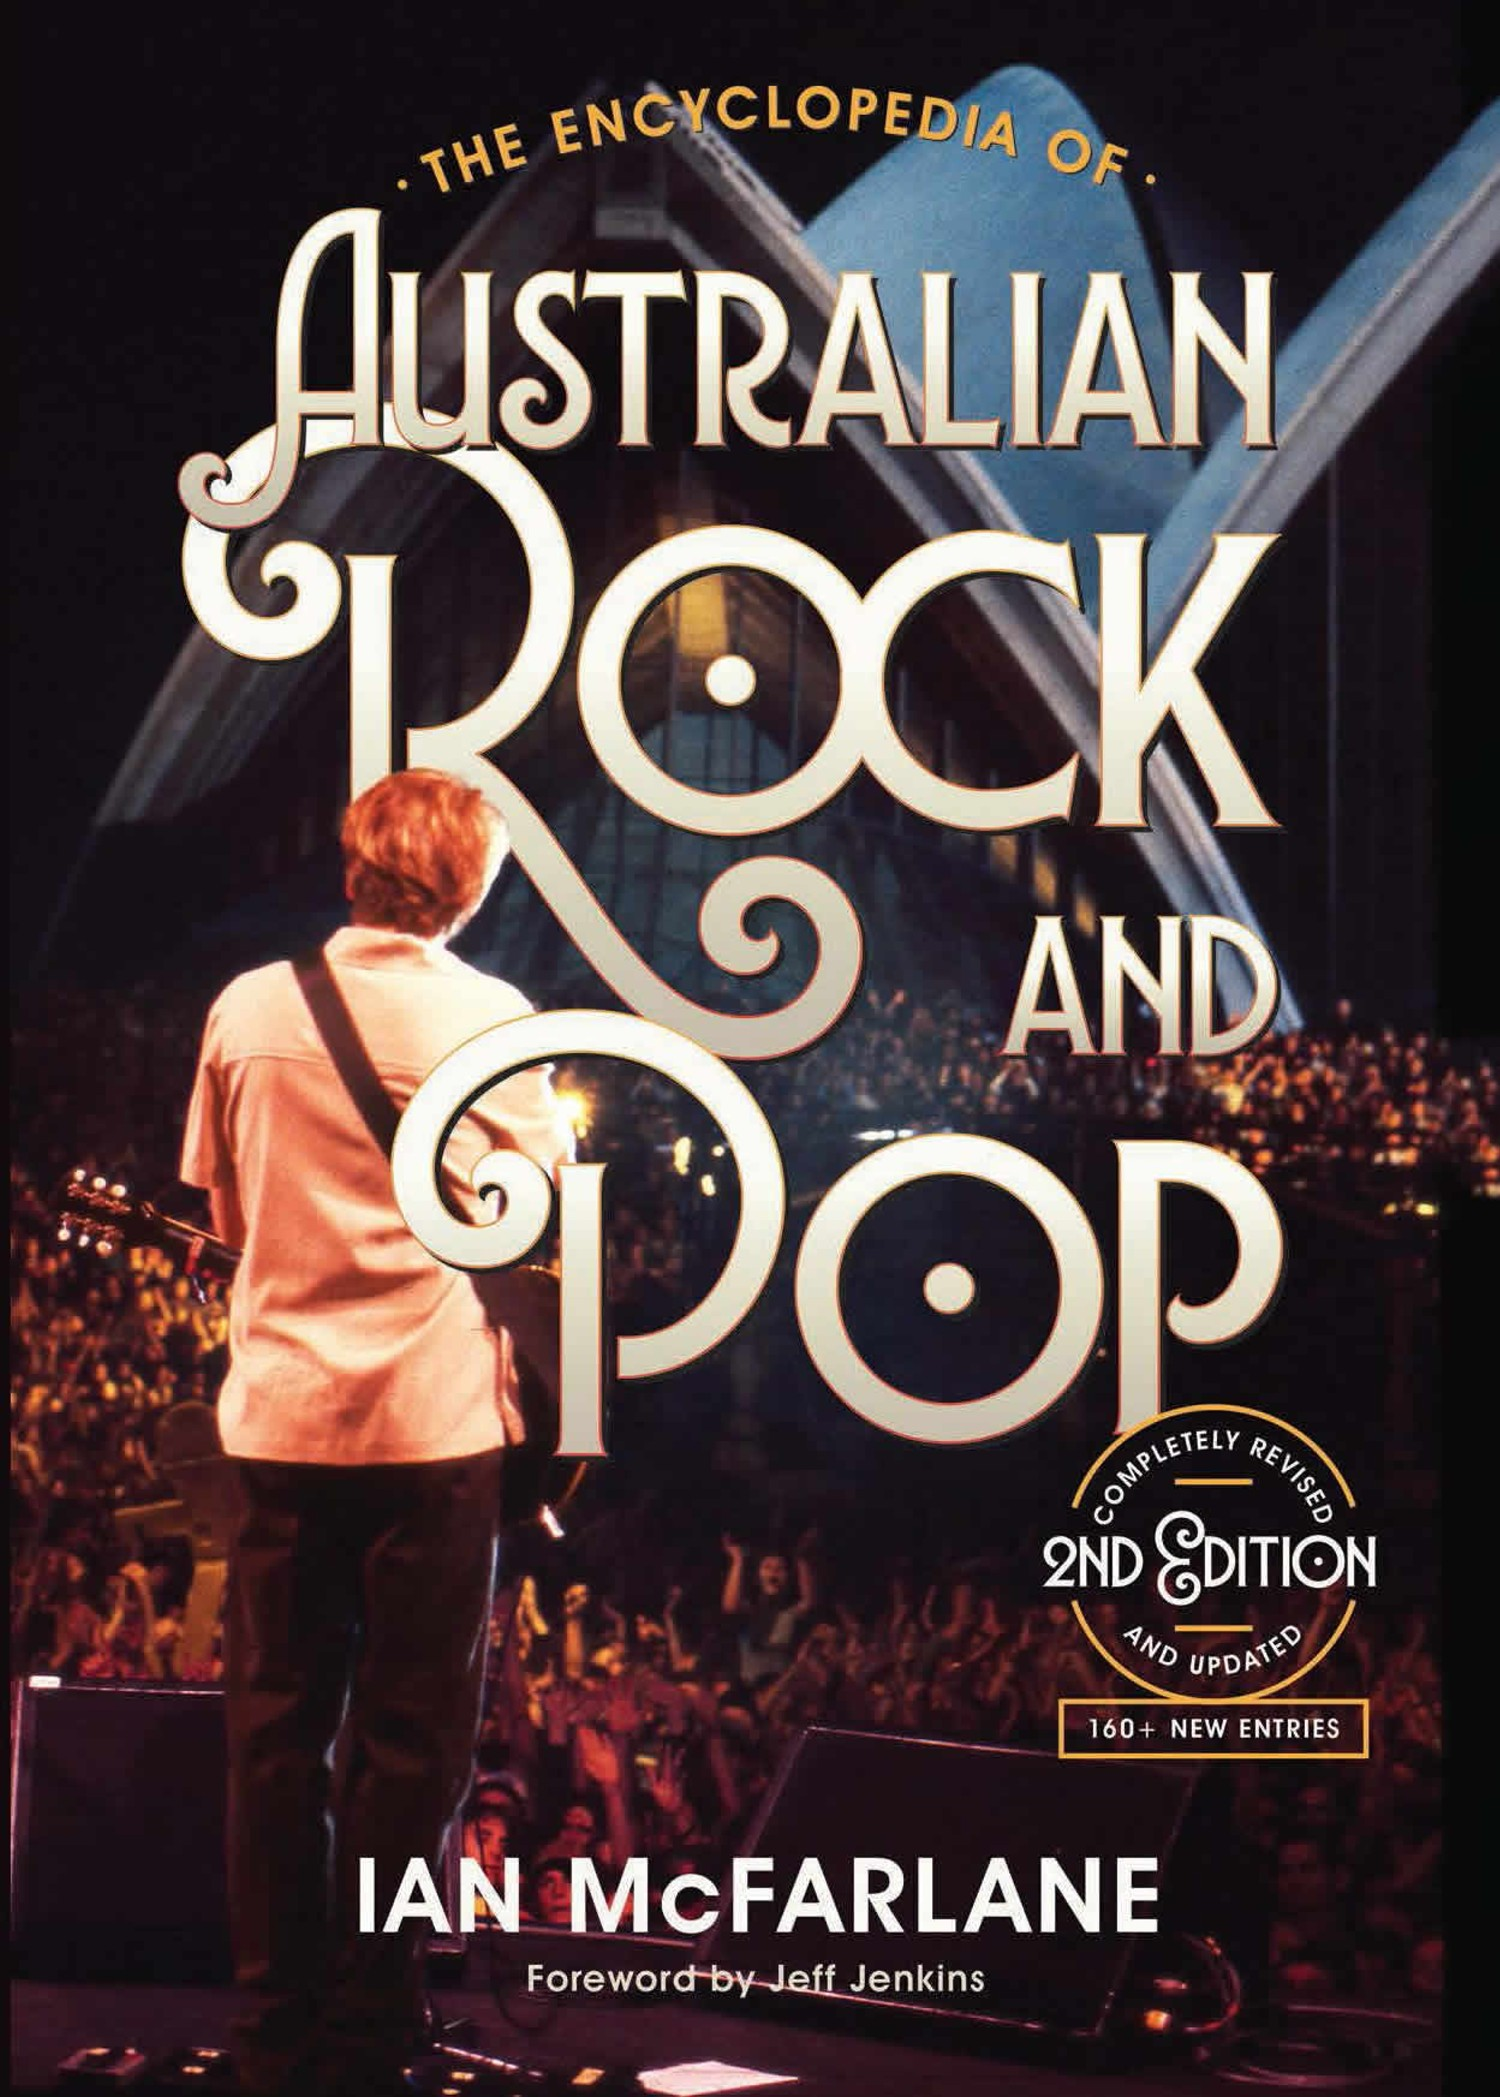 The Encyclopedia of Australian Rock and Pop (2nd Edition) by Ian McFarlane